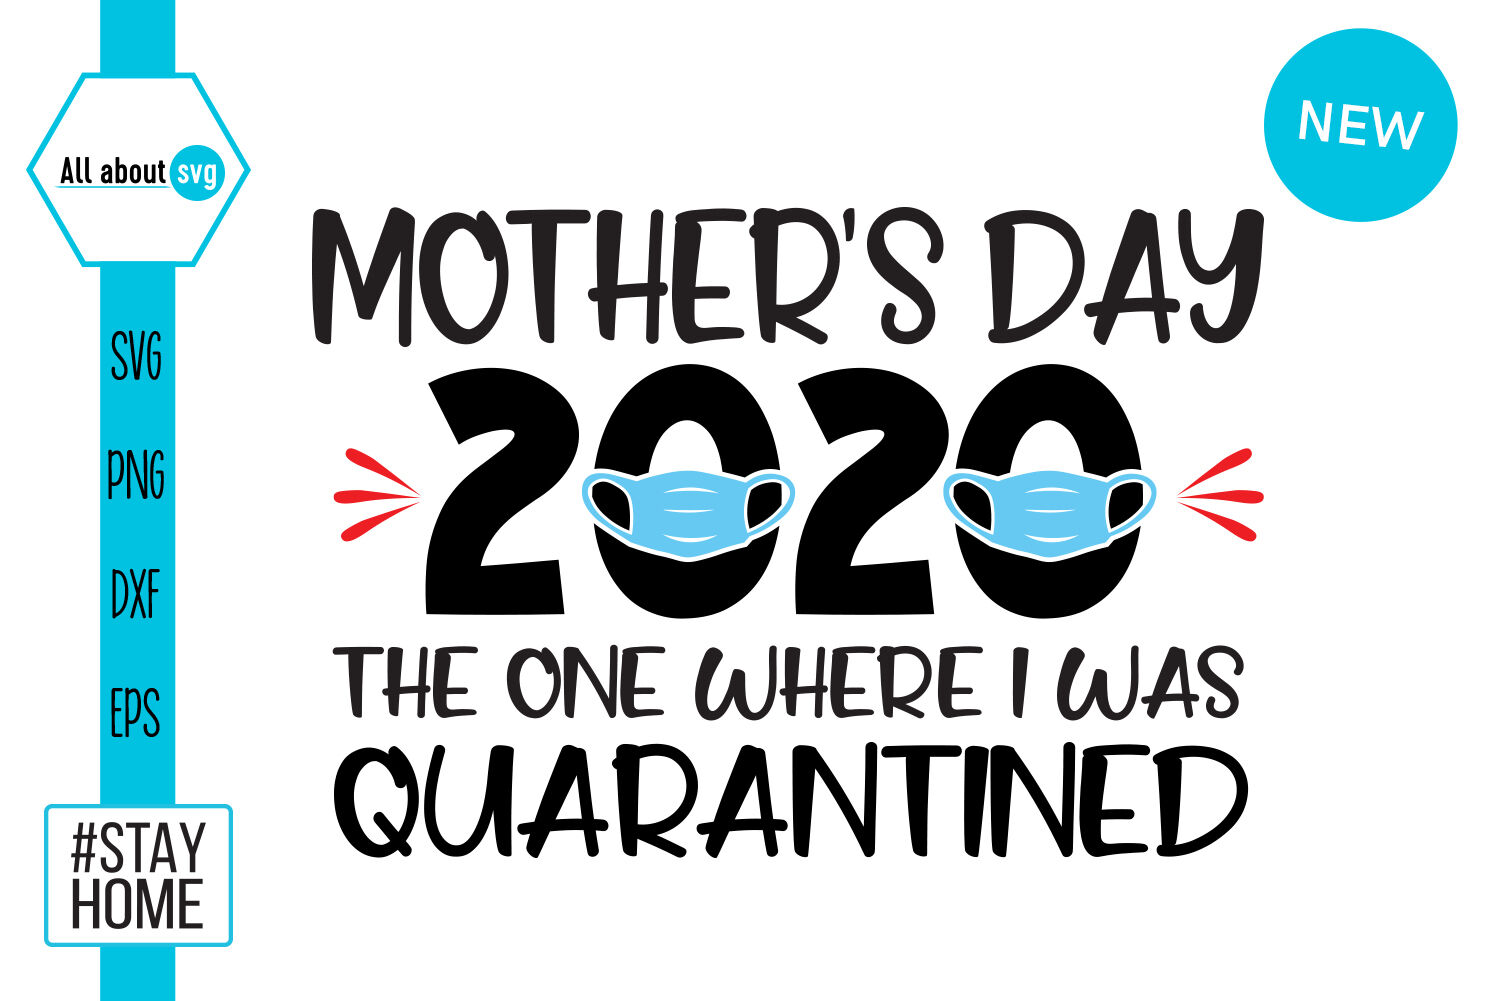 Mothers Day 2020 Quarantined Svg By All About Svg Thehungryjpeg Com